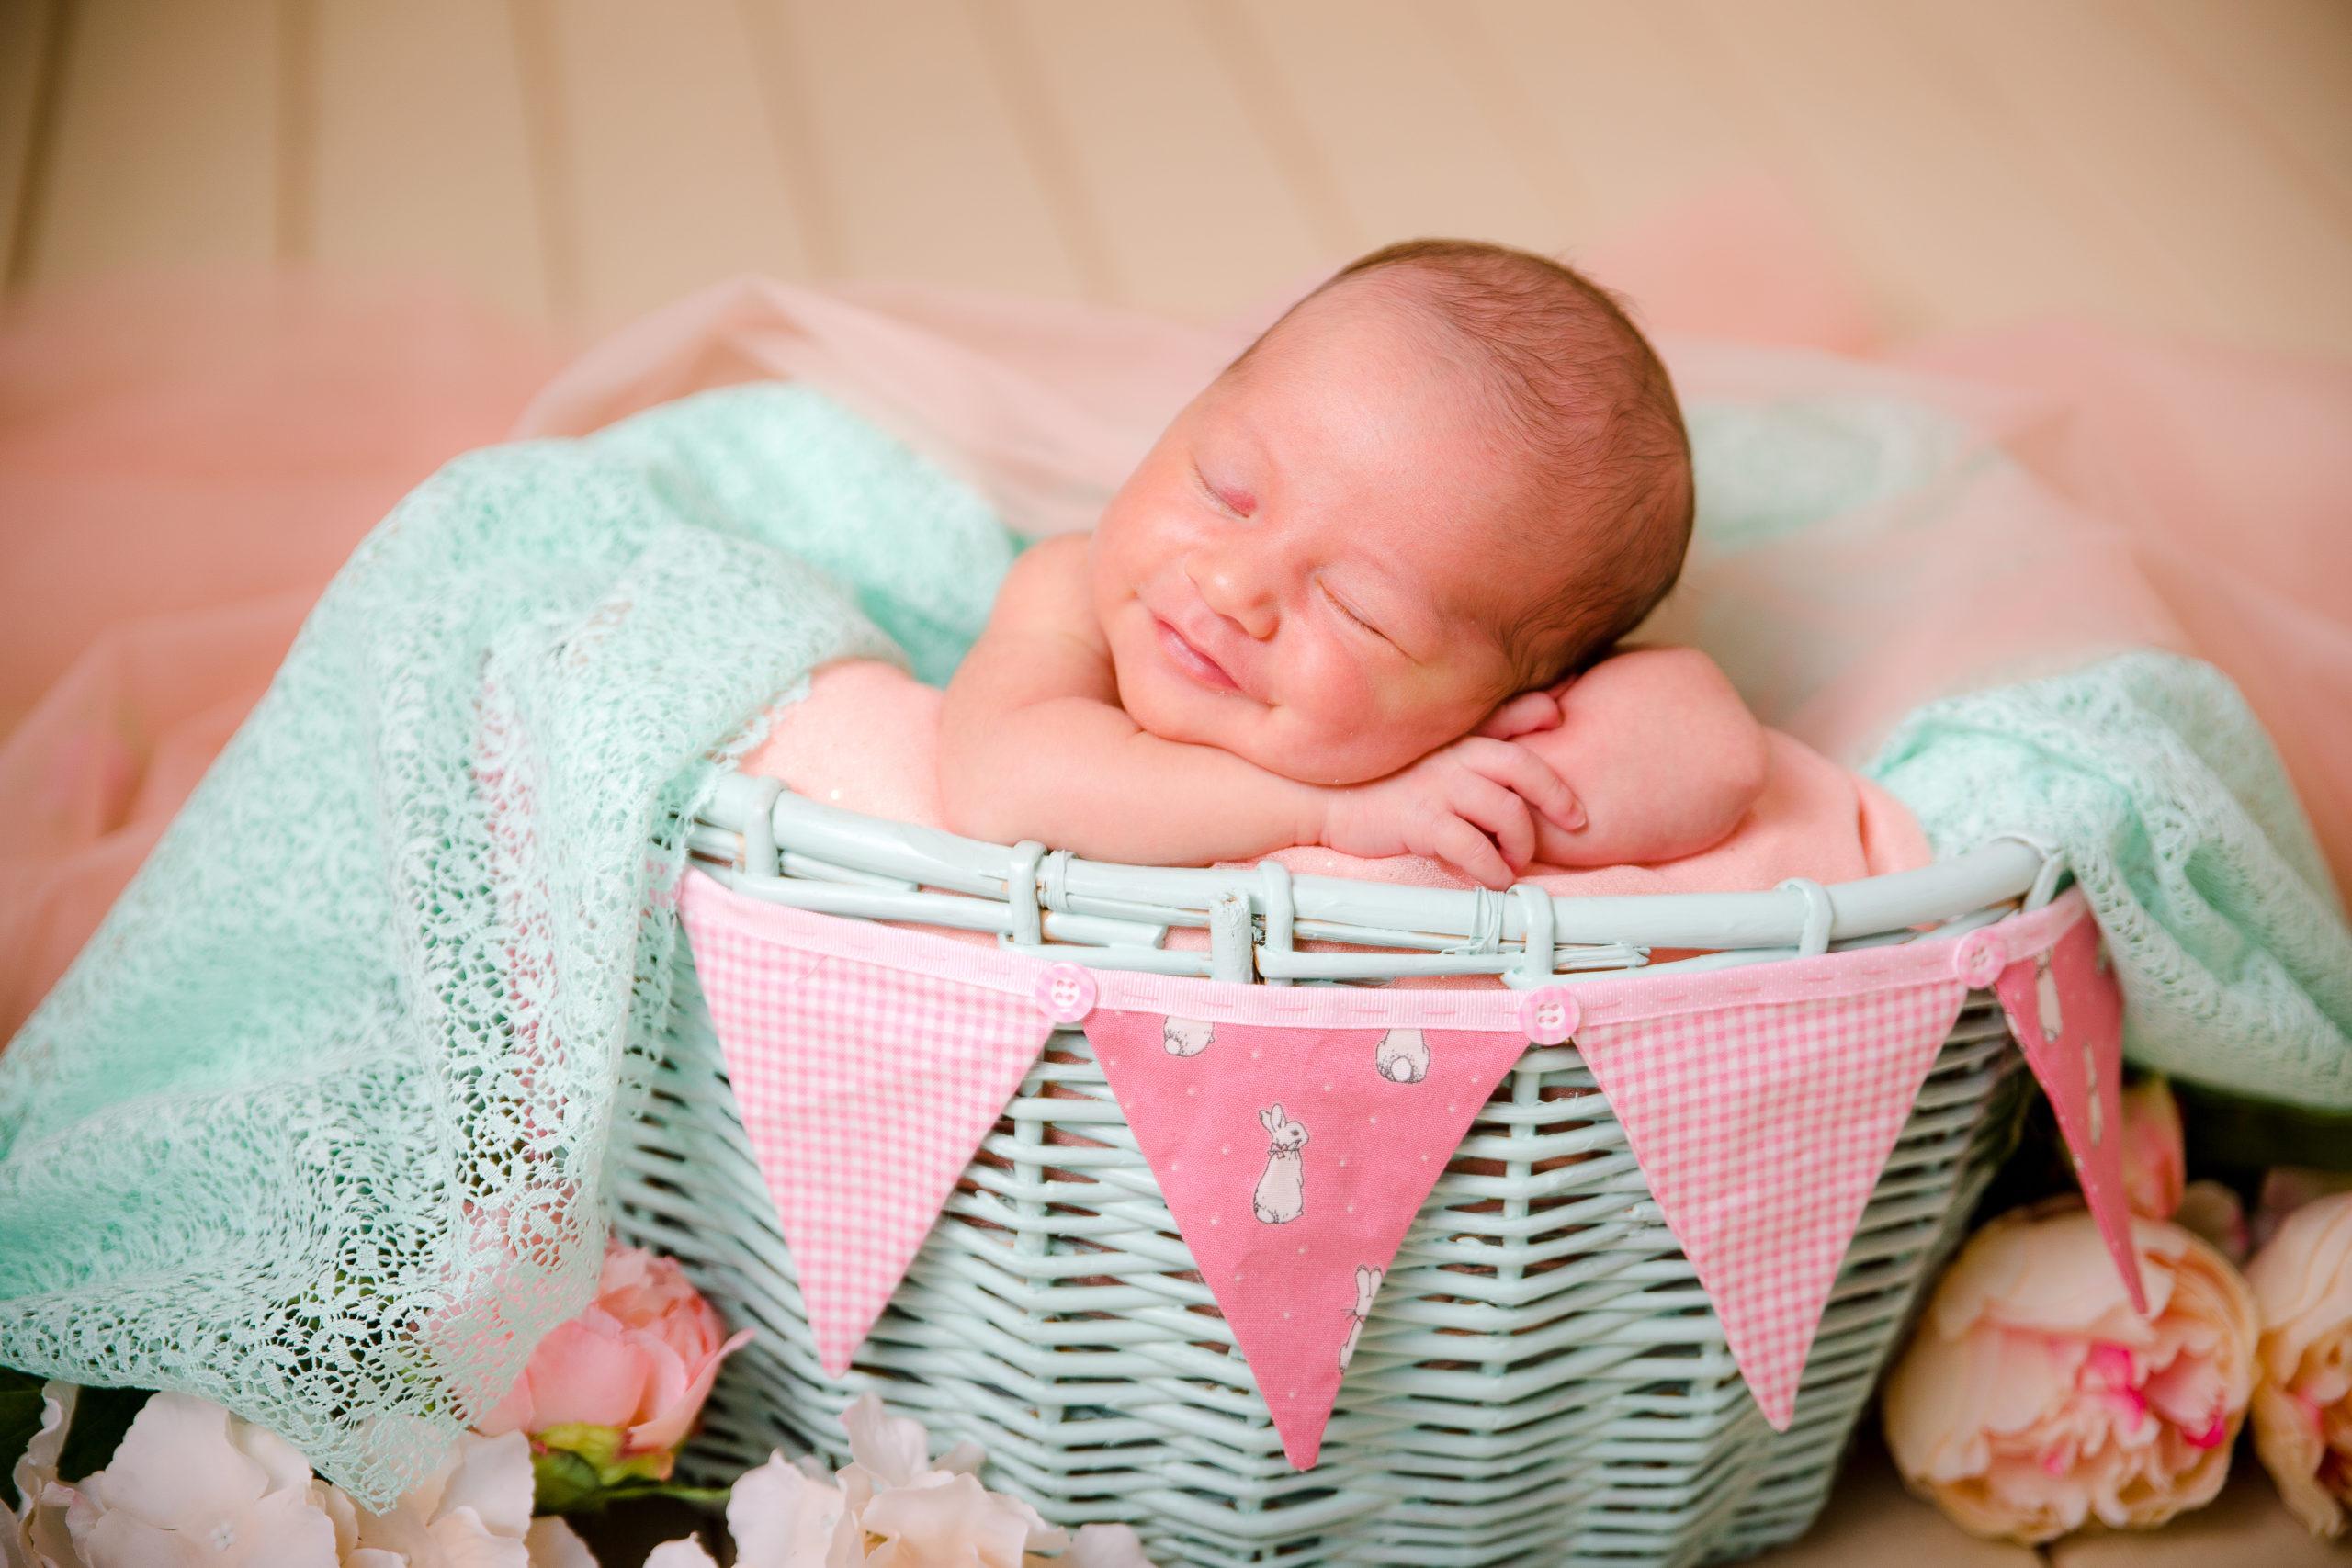 Newborn baby and Family Photographer in South West London Wimbledon Baby girl in cream min and pink colours in a basket Studio newborn photography in South West London Wimbledon SW19